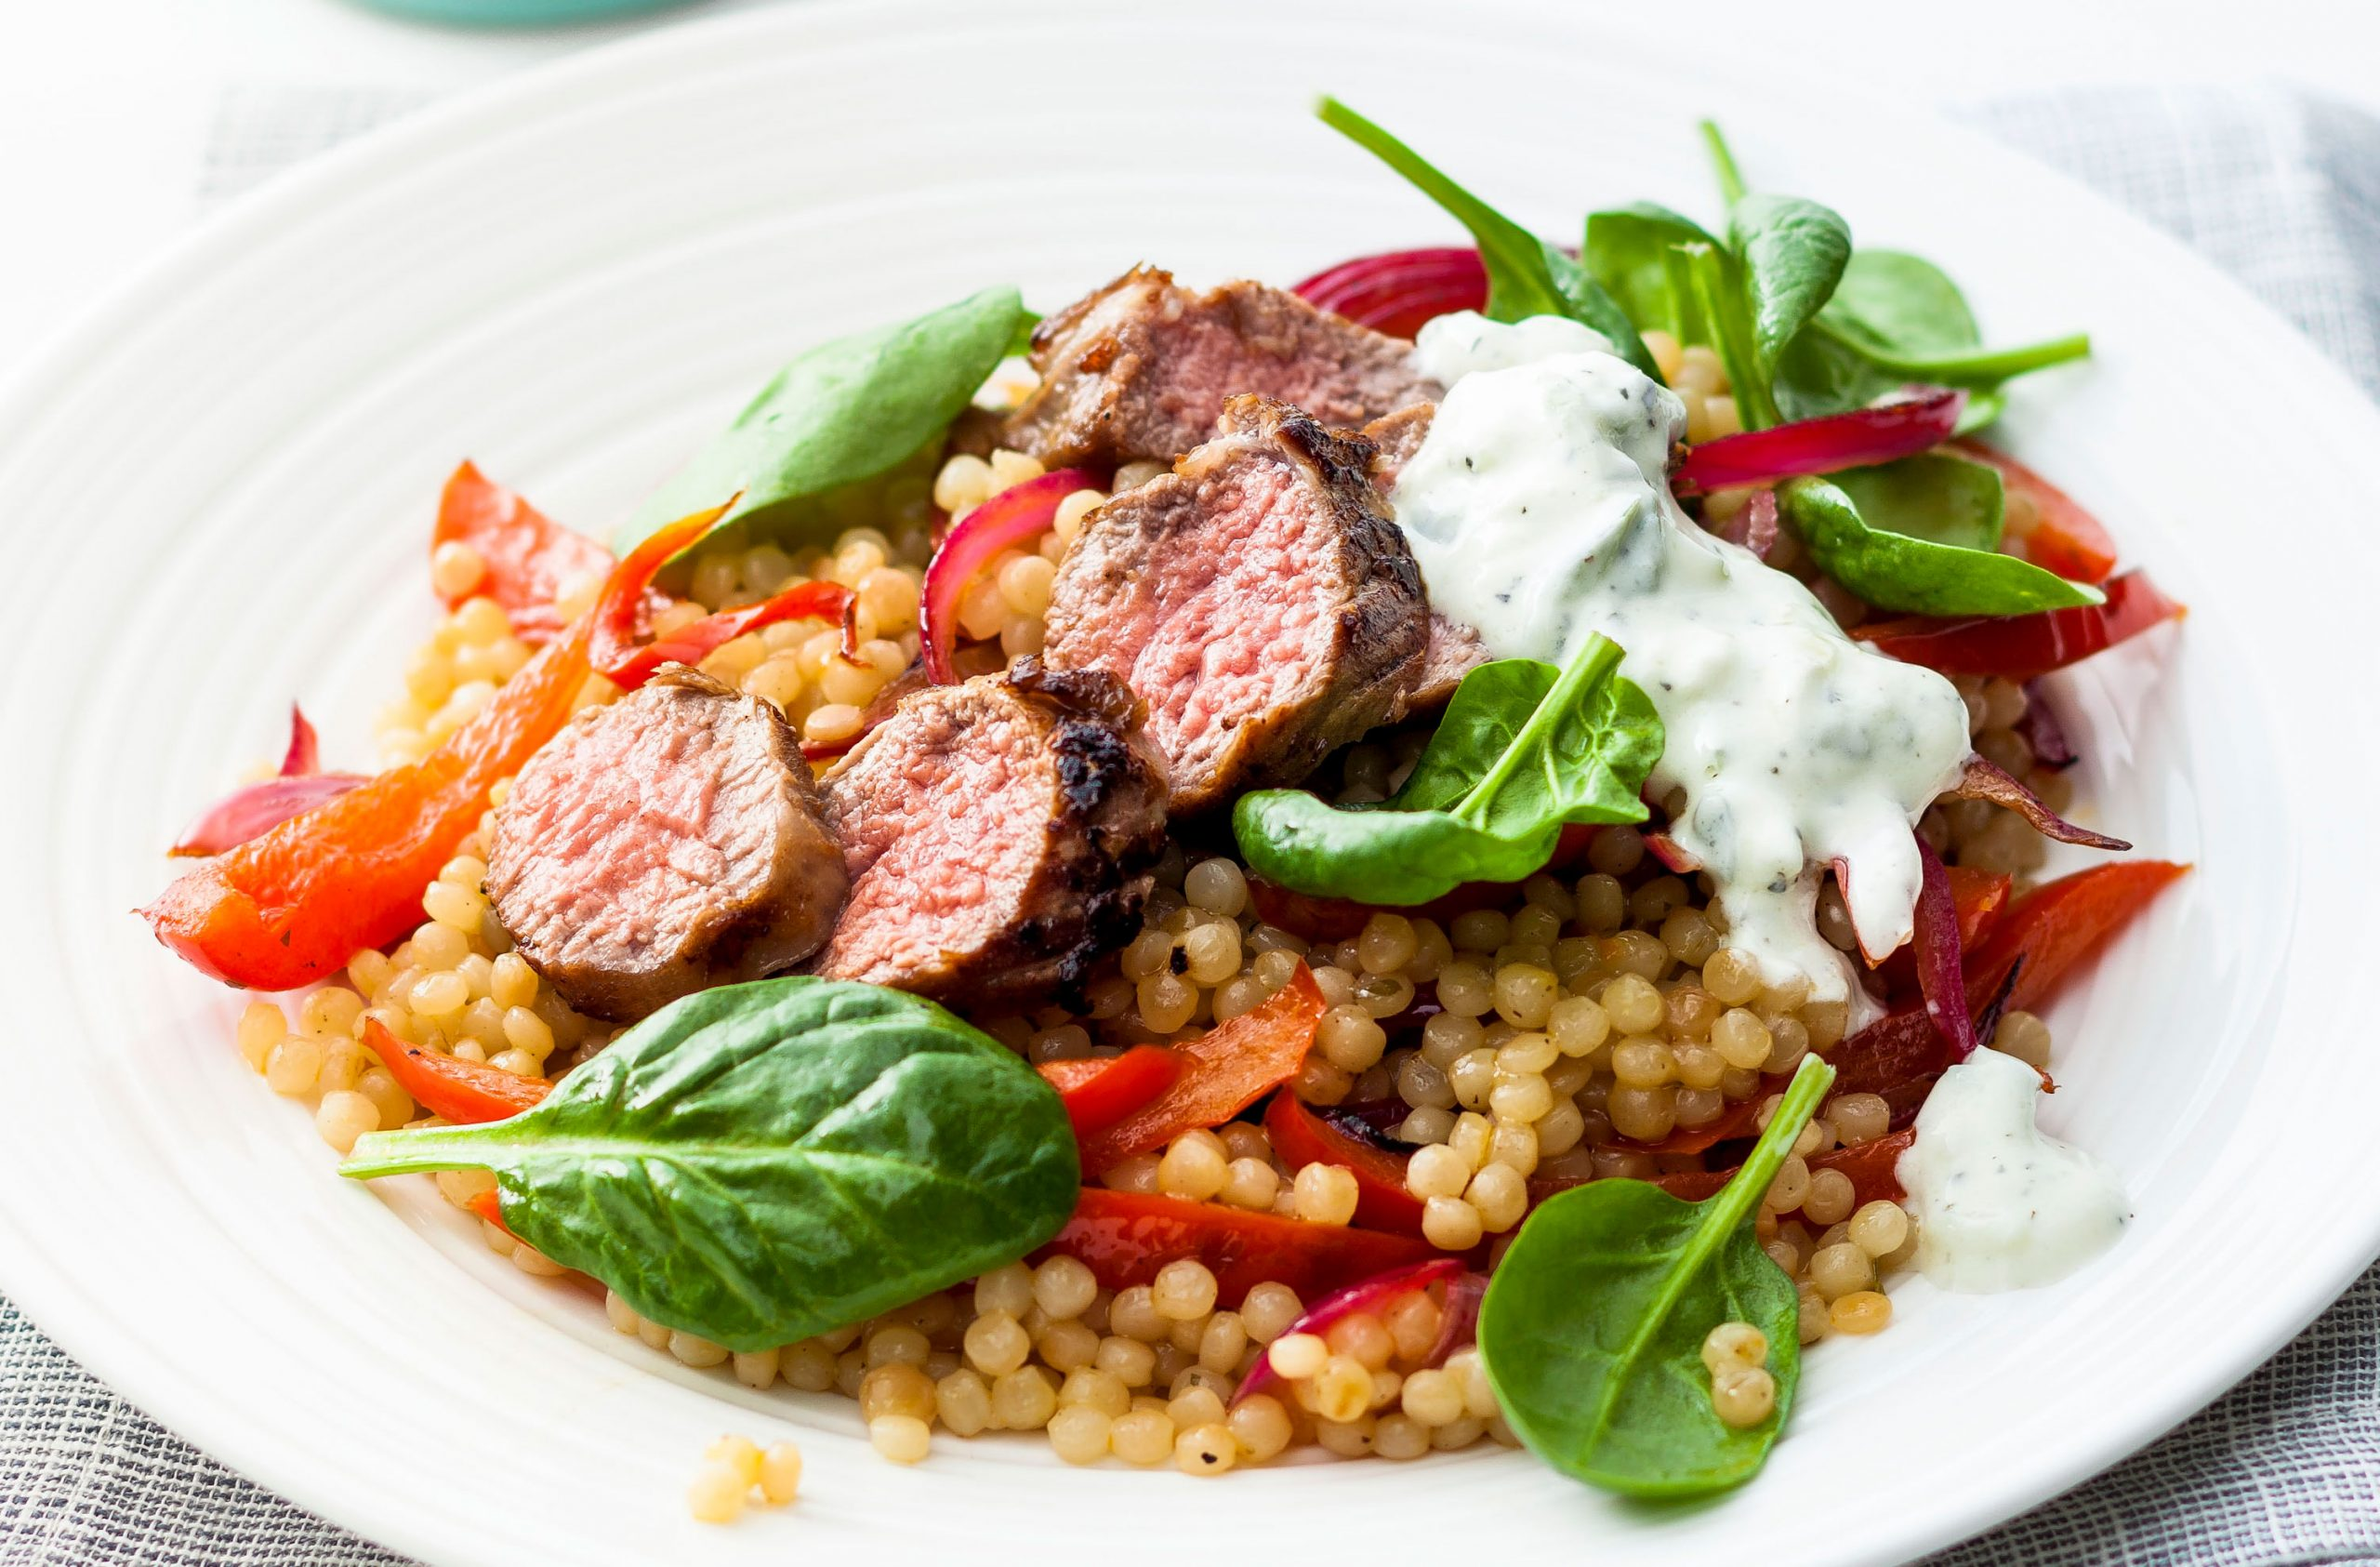 Pan fried lamb with giant couscous salad